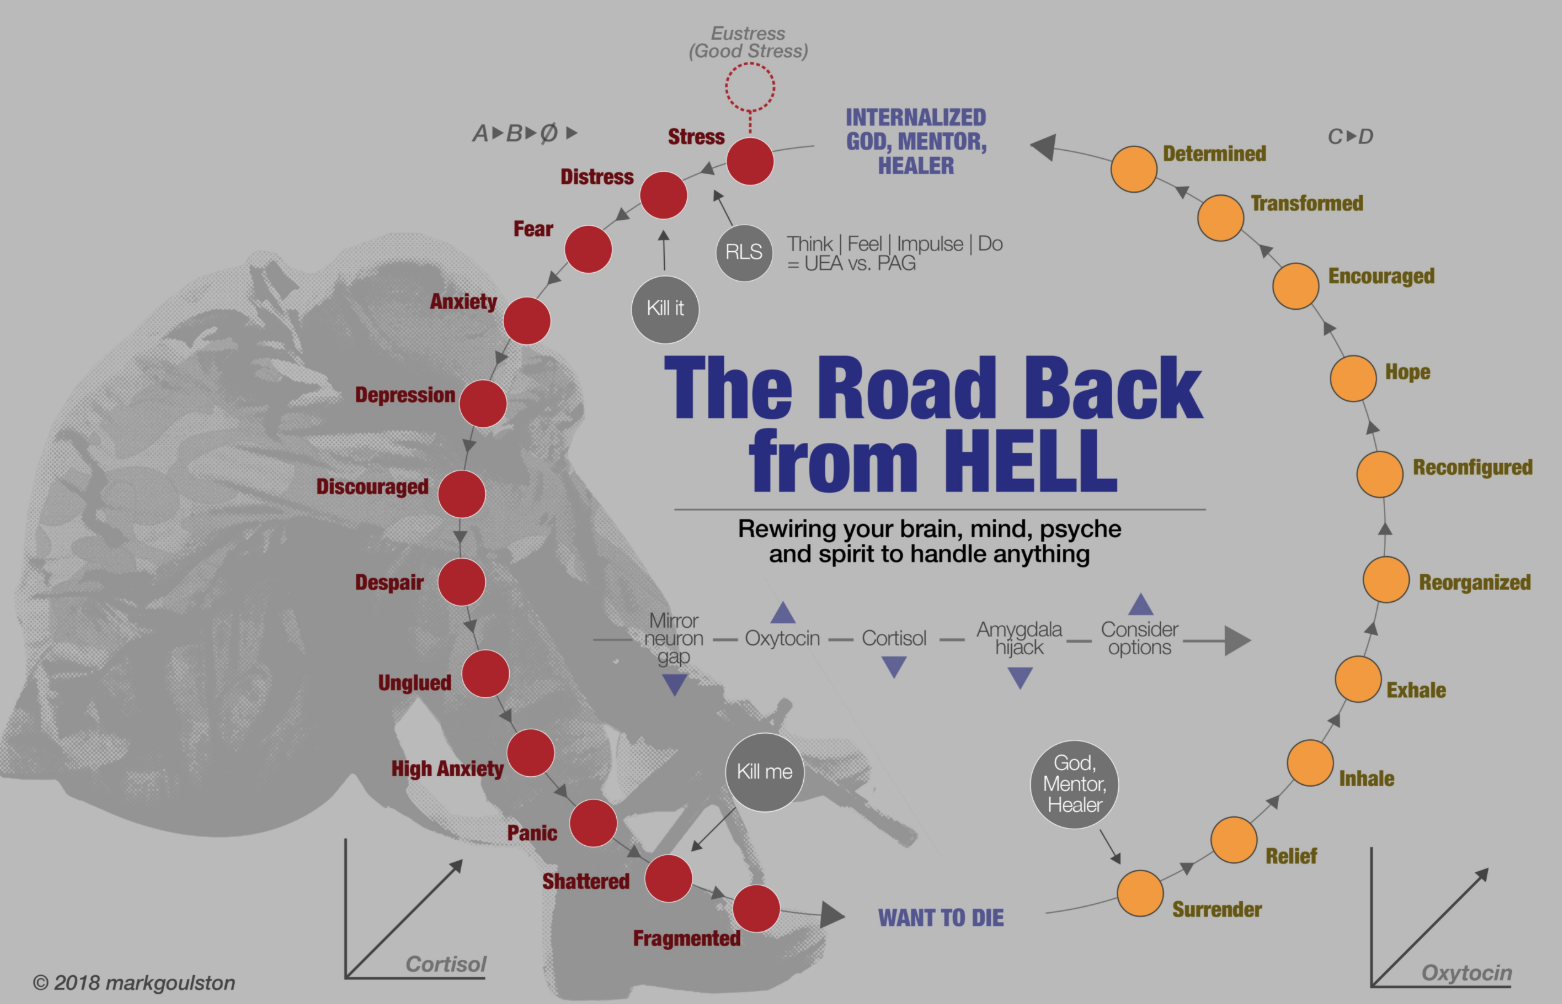 The Road Back from Hell